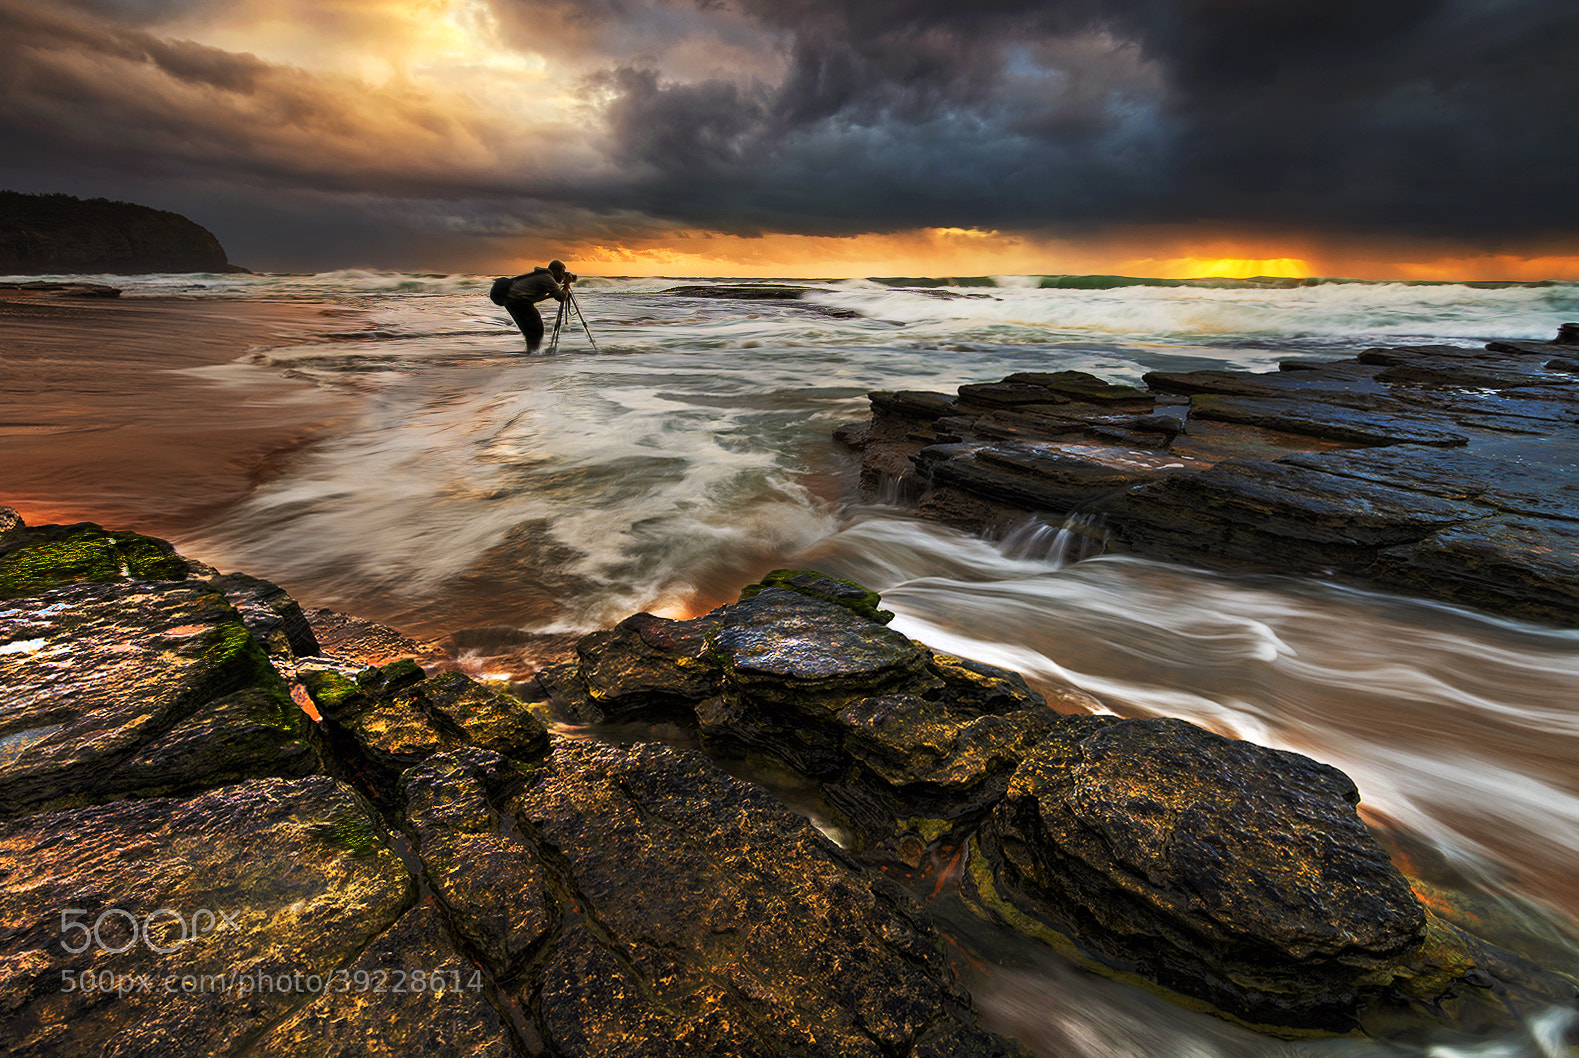 Photograph work out! by Goff Kitsawad on 500px